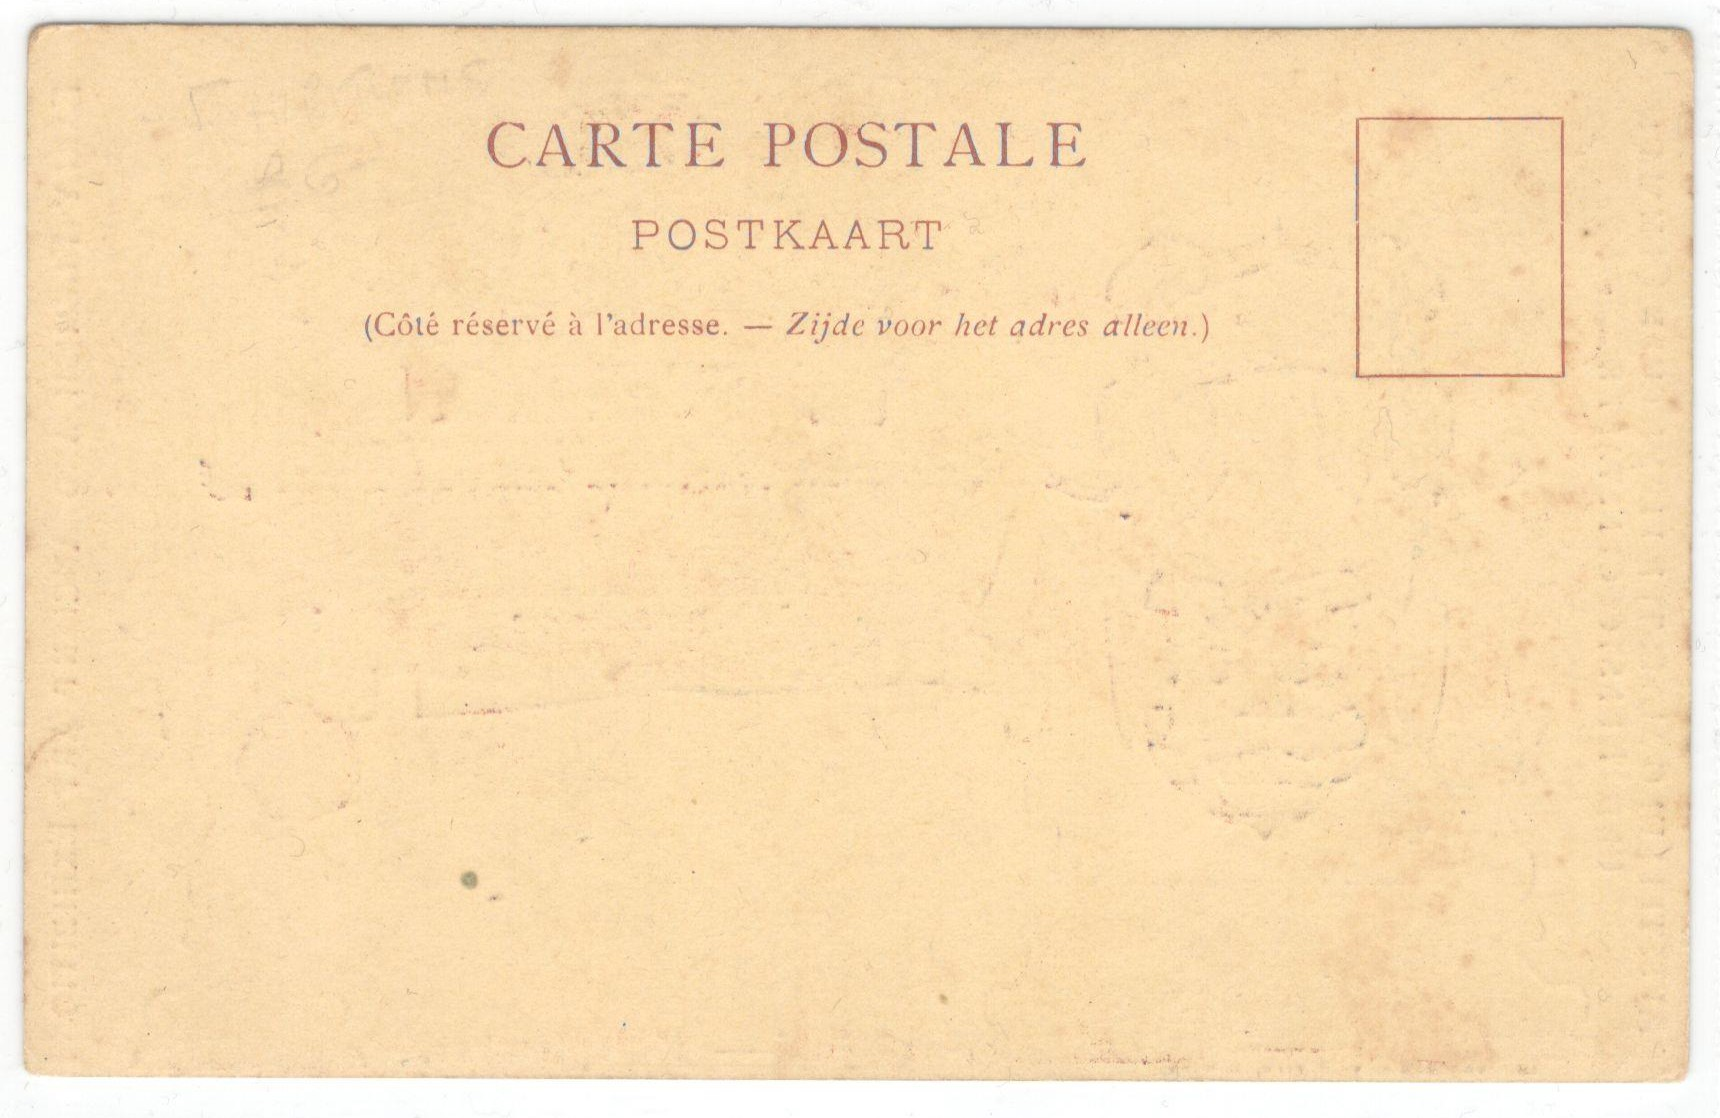 1902 EARLY FLEMISH AND ANCIENT ART EXHIBITION POSTCARD - Image 2 of 2